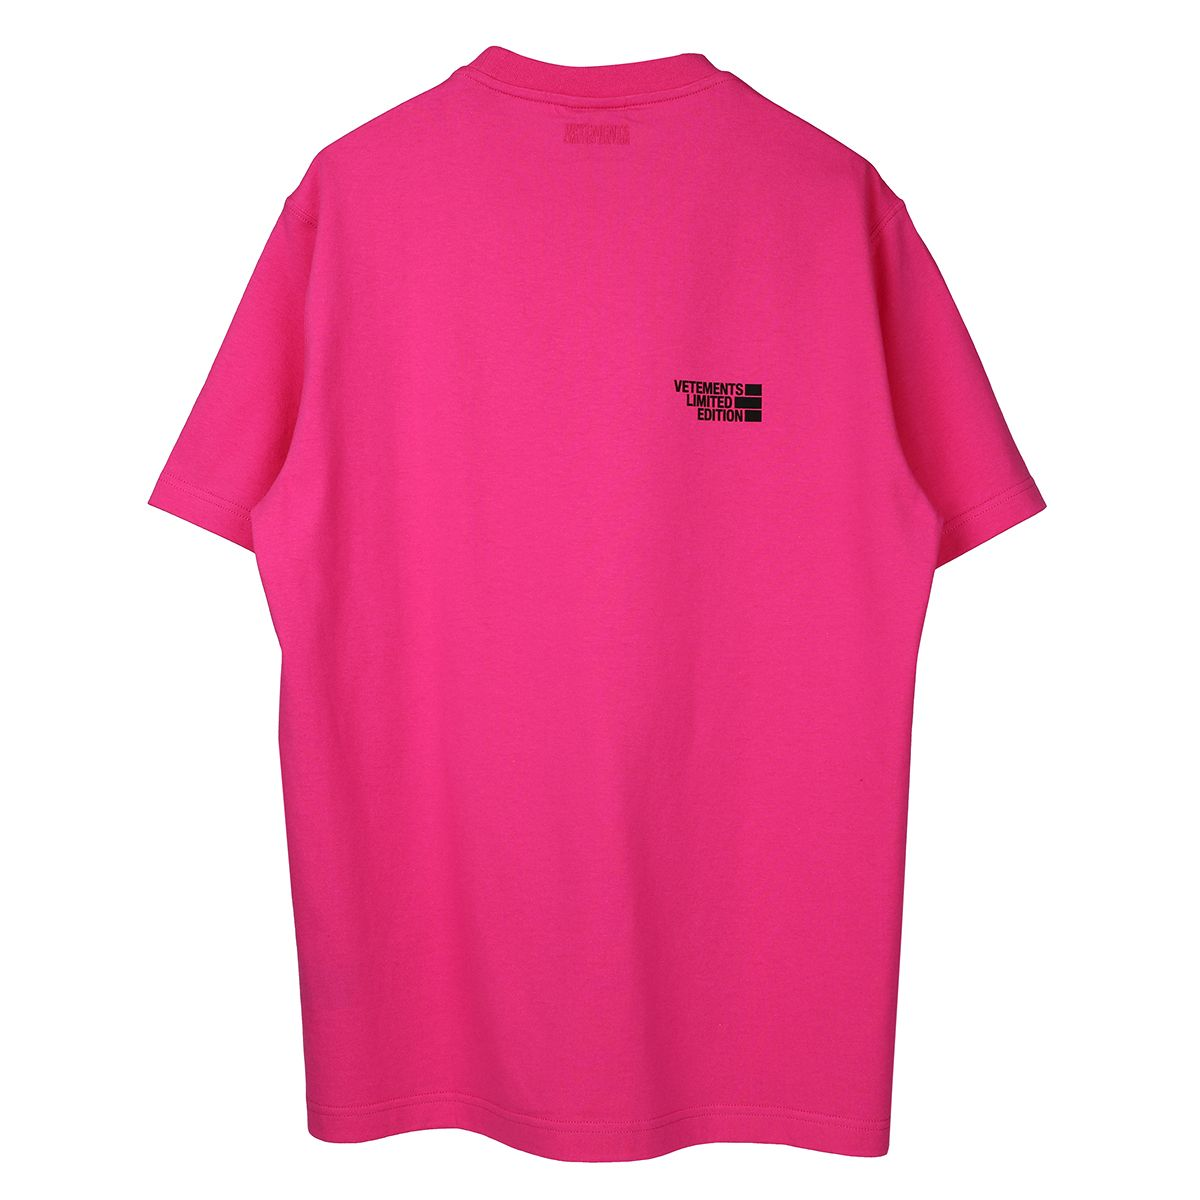 VETEMENTS LOGO LIMITED EDITION T-SHIRT / HOT PINK